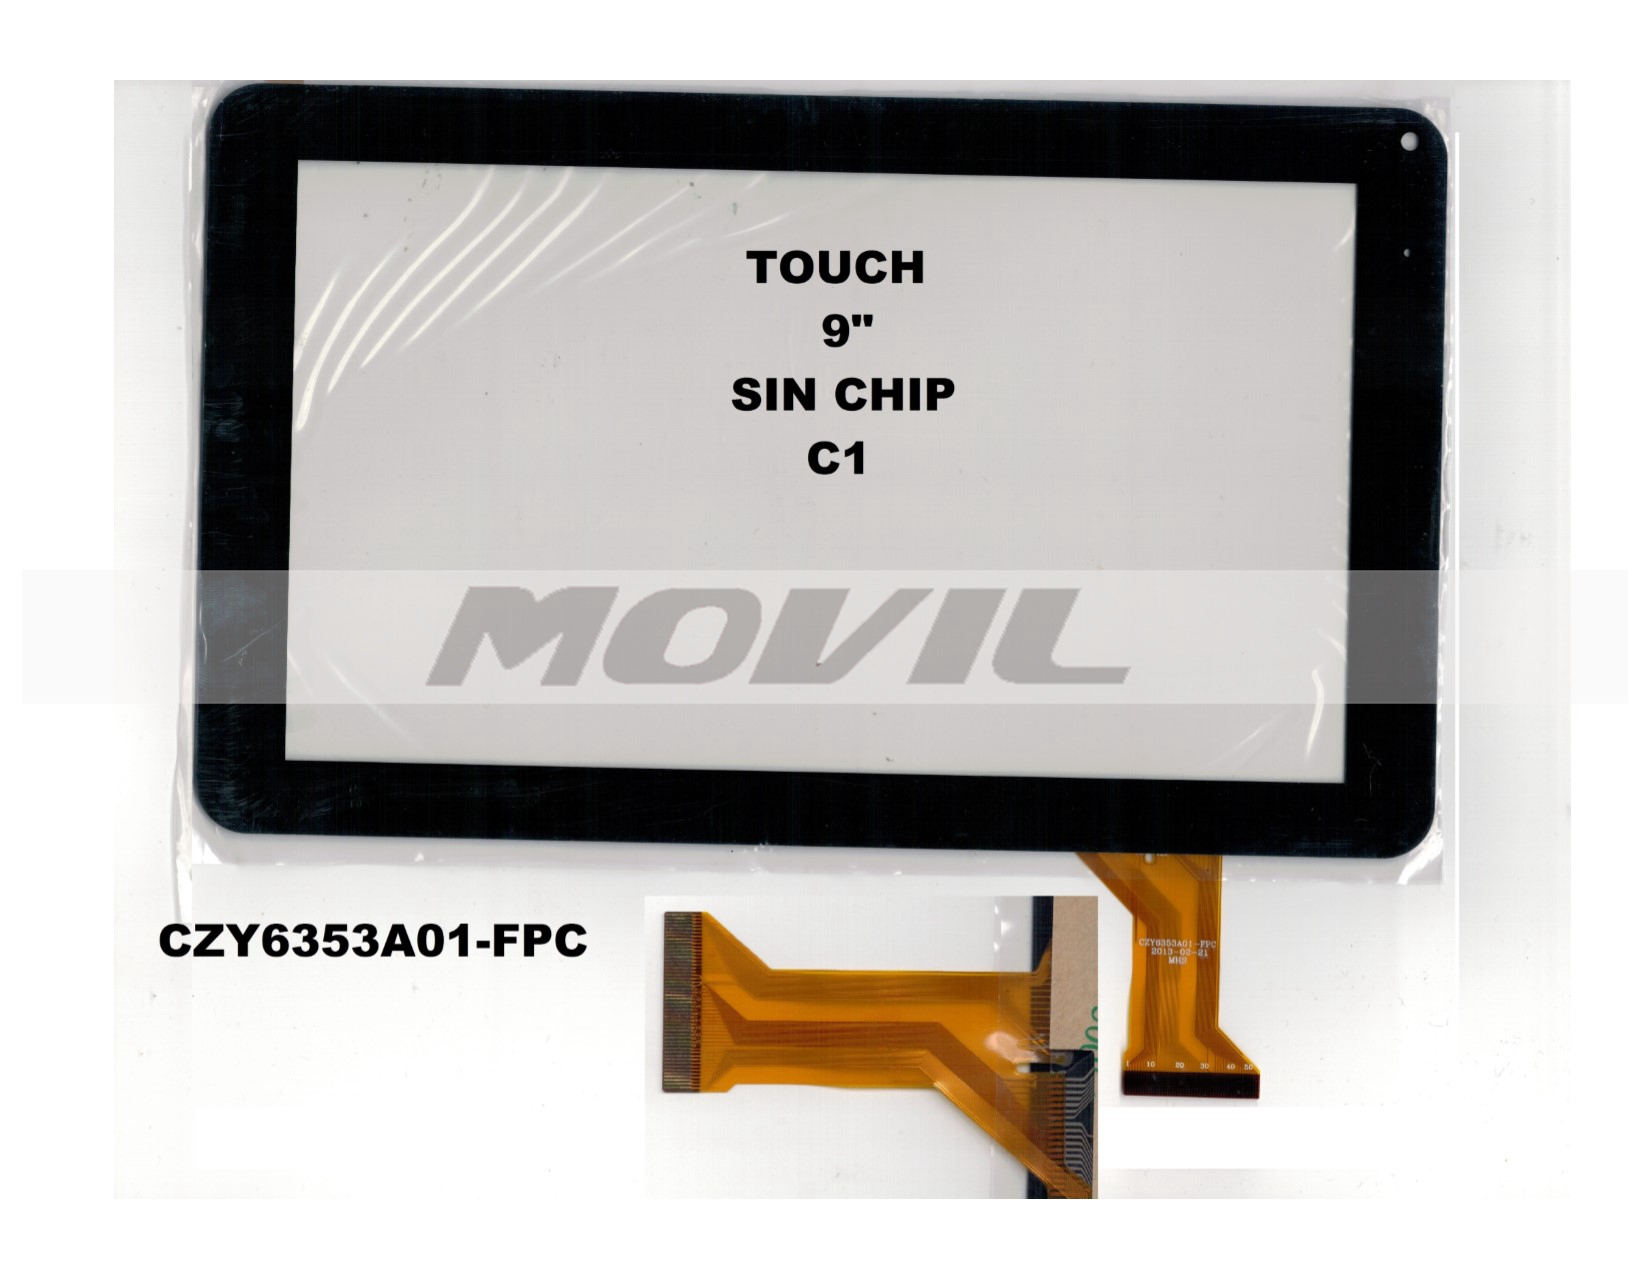 Touch tactil para tablet flex 9 inch SIN CHIP C1 CZY6353A01-FPC